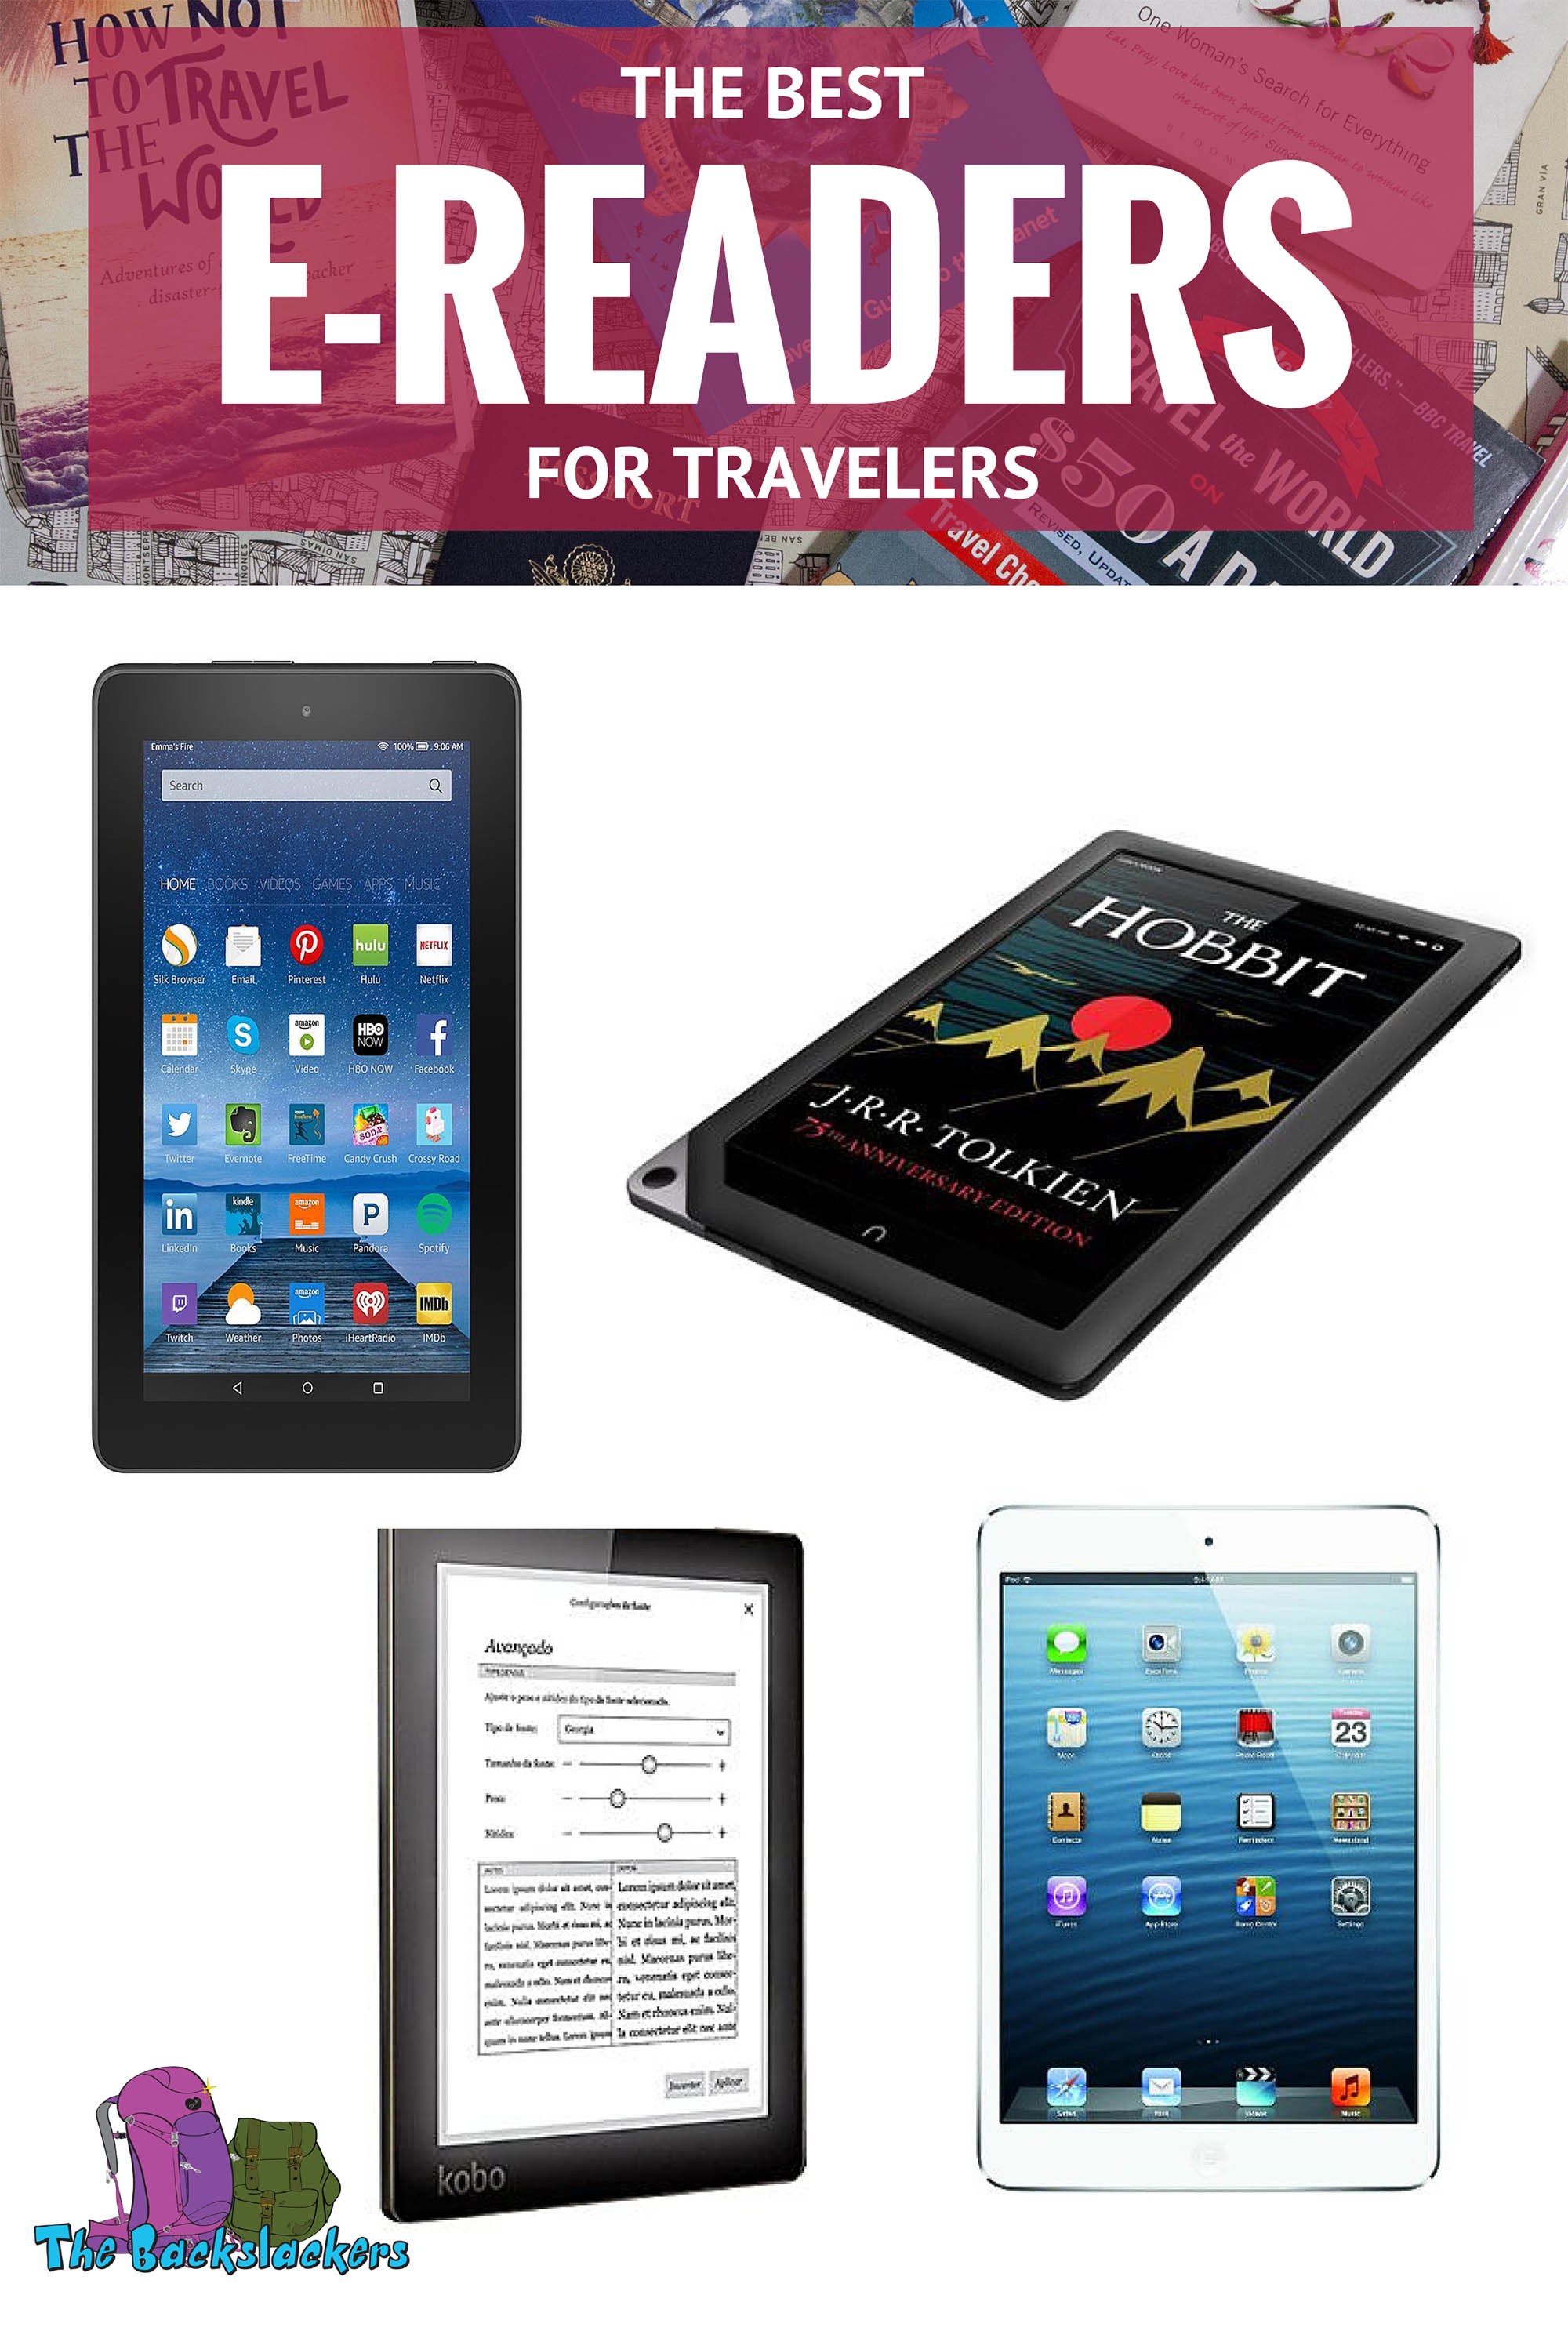 Best E-Readers for Travelers